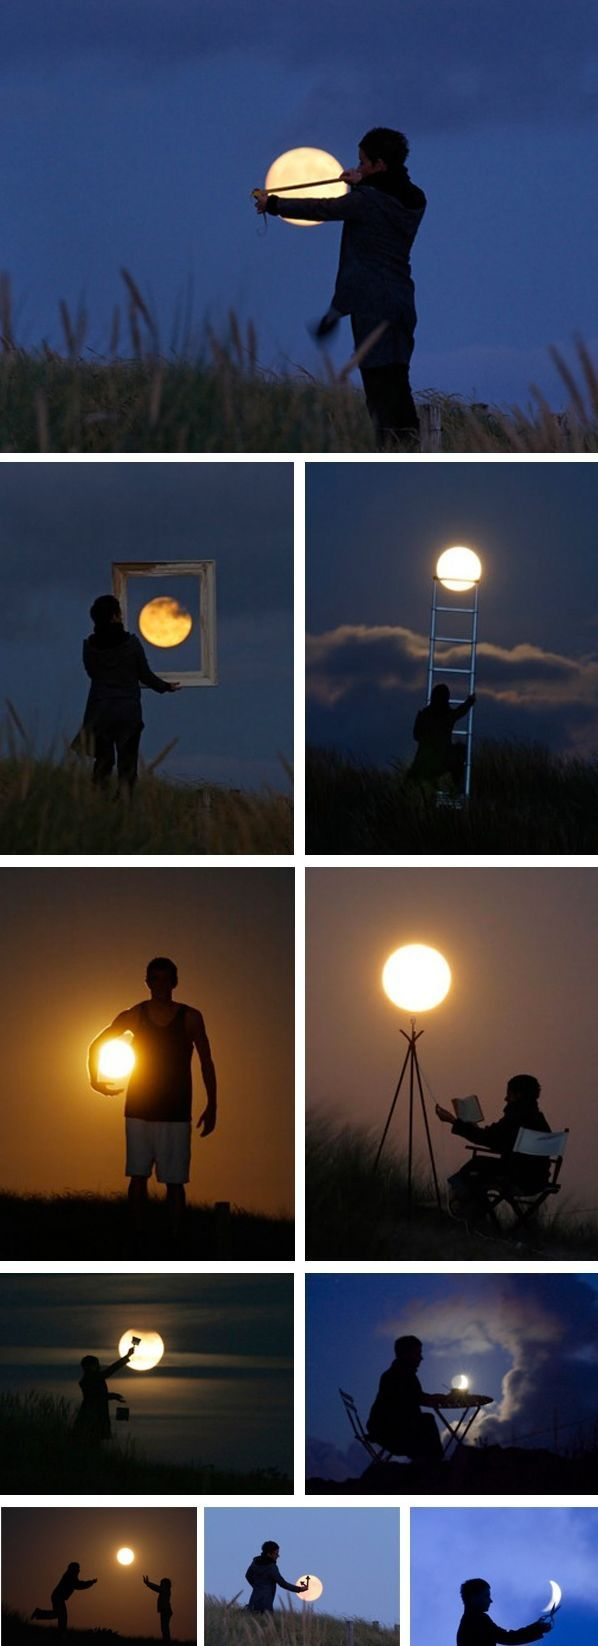 Capturing the Moon - an amazing set of people playing with the moon by Laurent Laveder